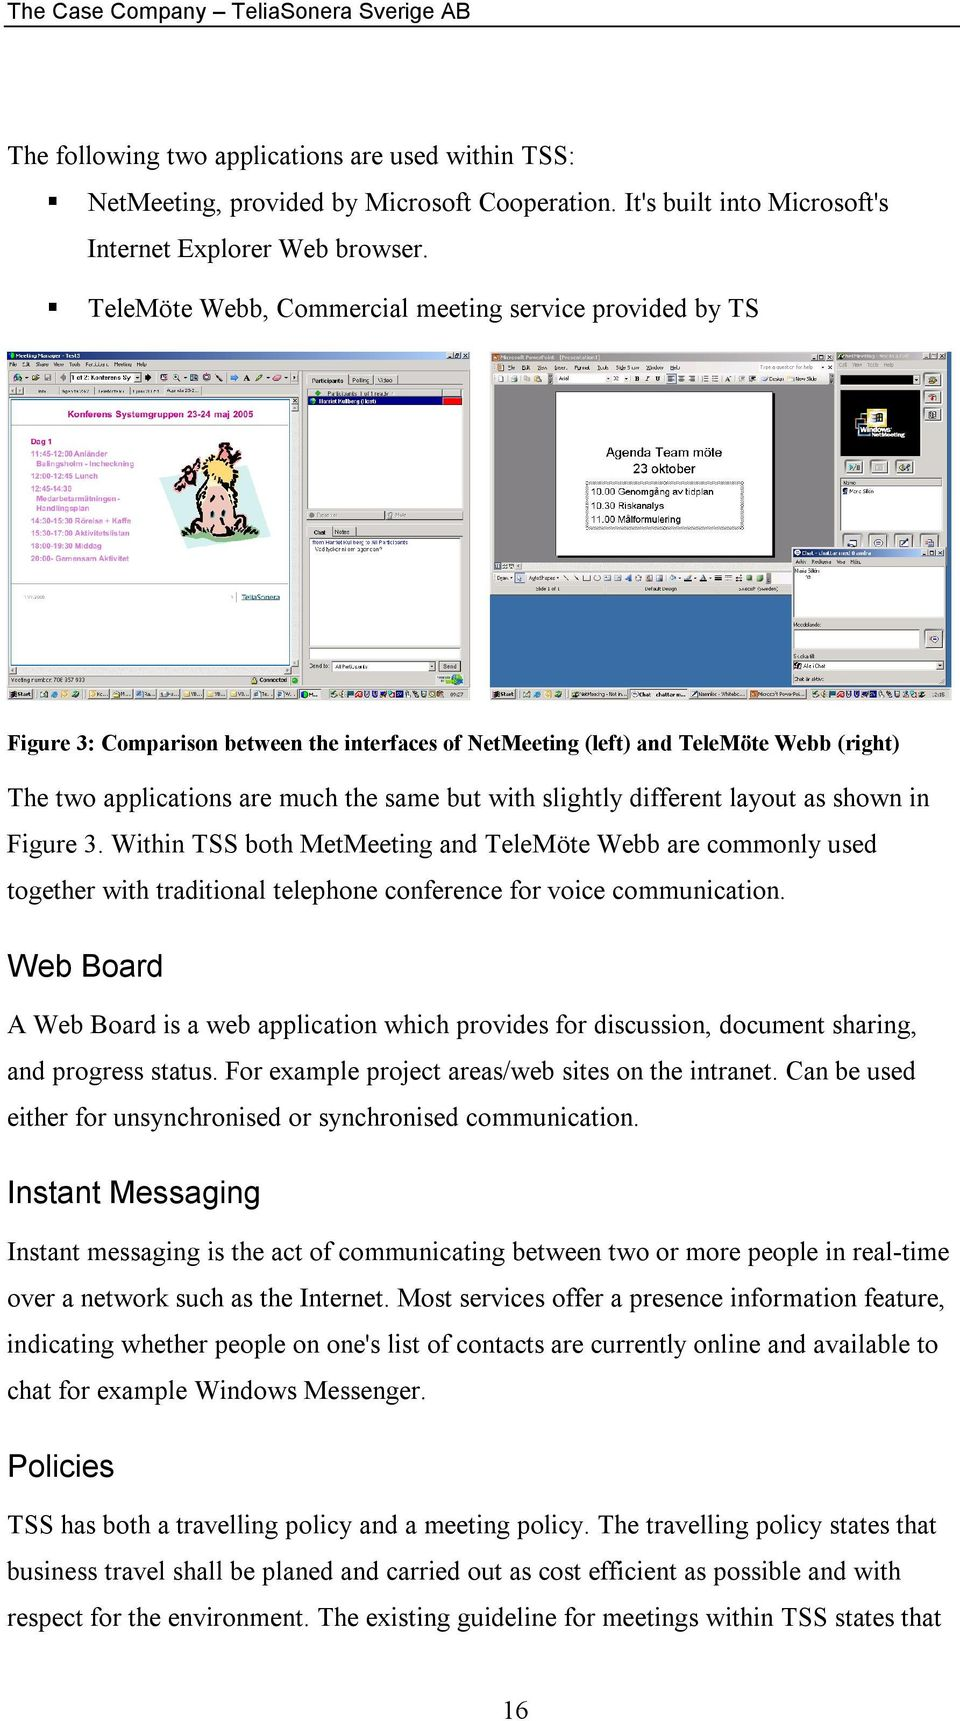 slightly different layout as shown in Figure 3. Within TSS both MetMeeting and TeleMöte Webb are commonly used together with traditional telephone conference for voice communication.